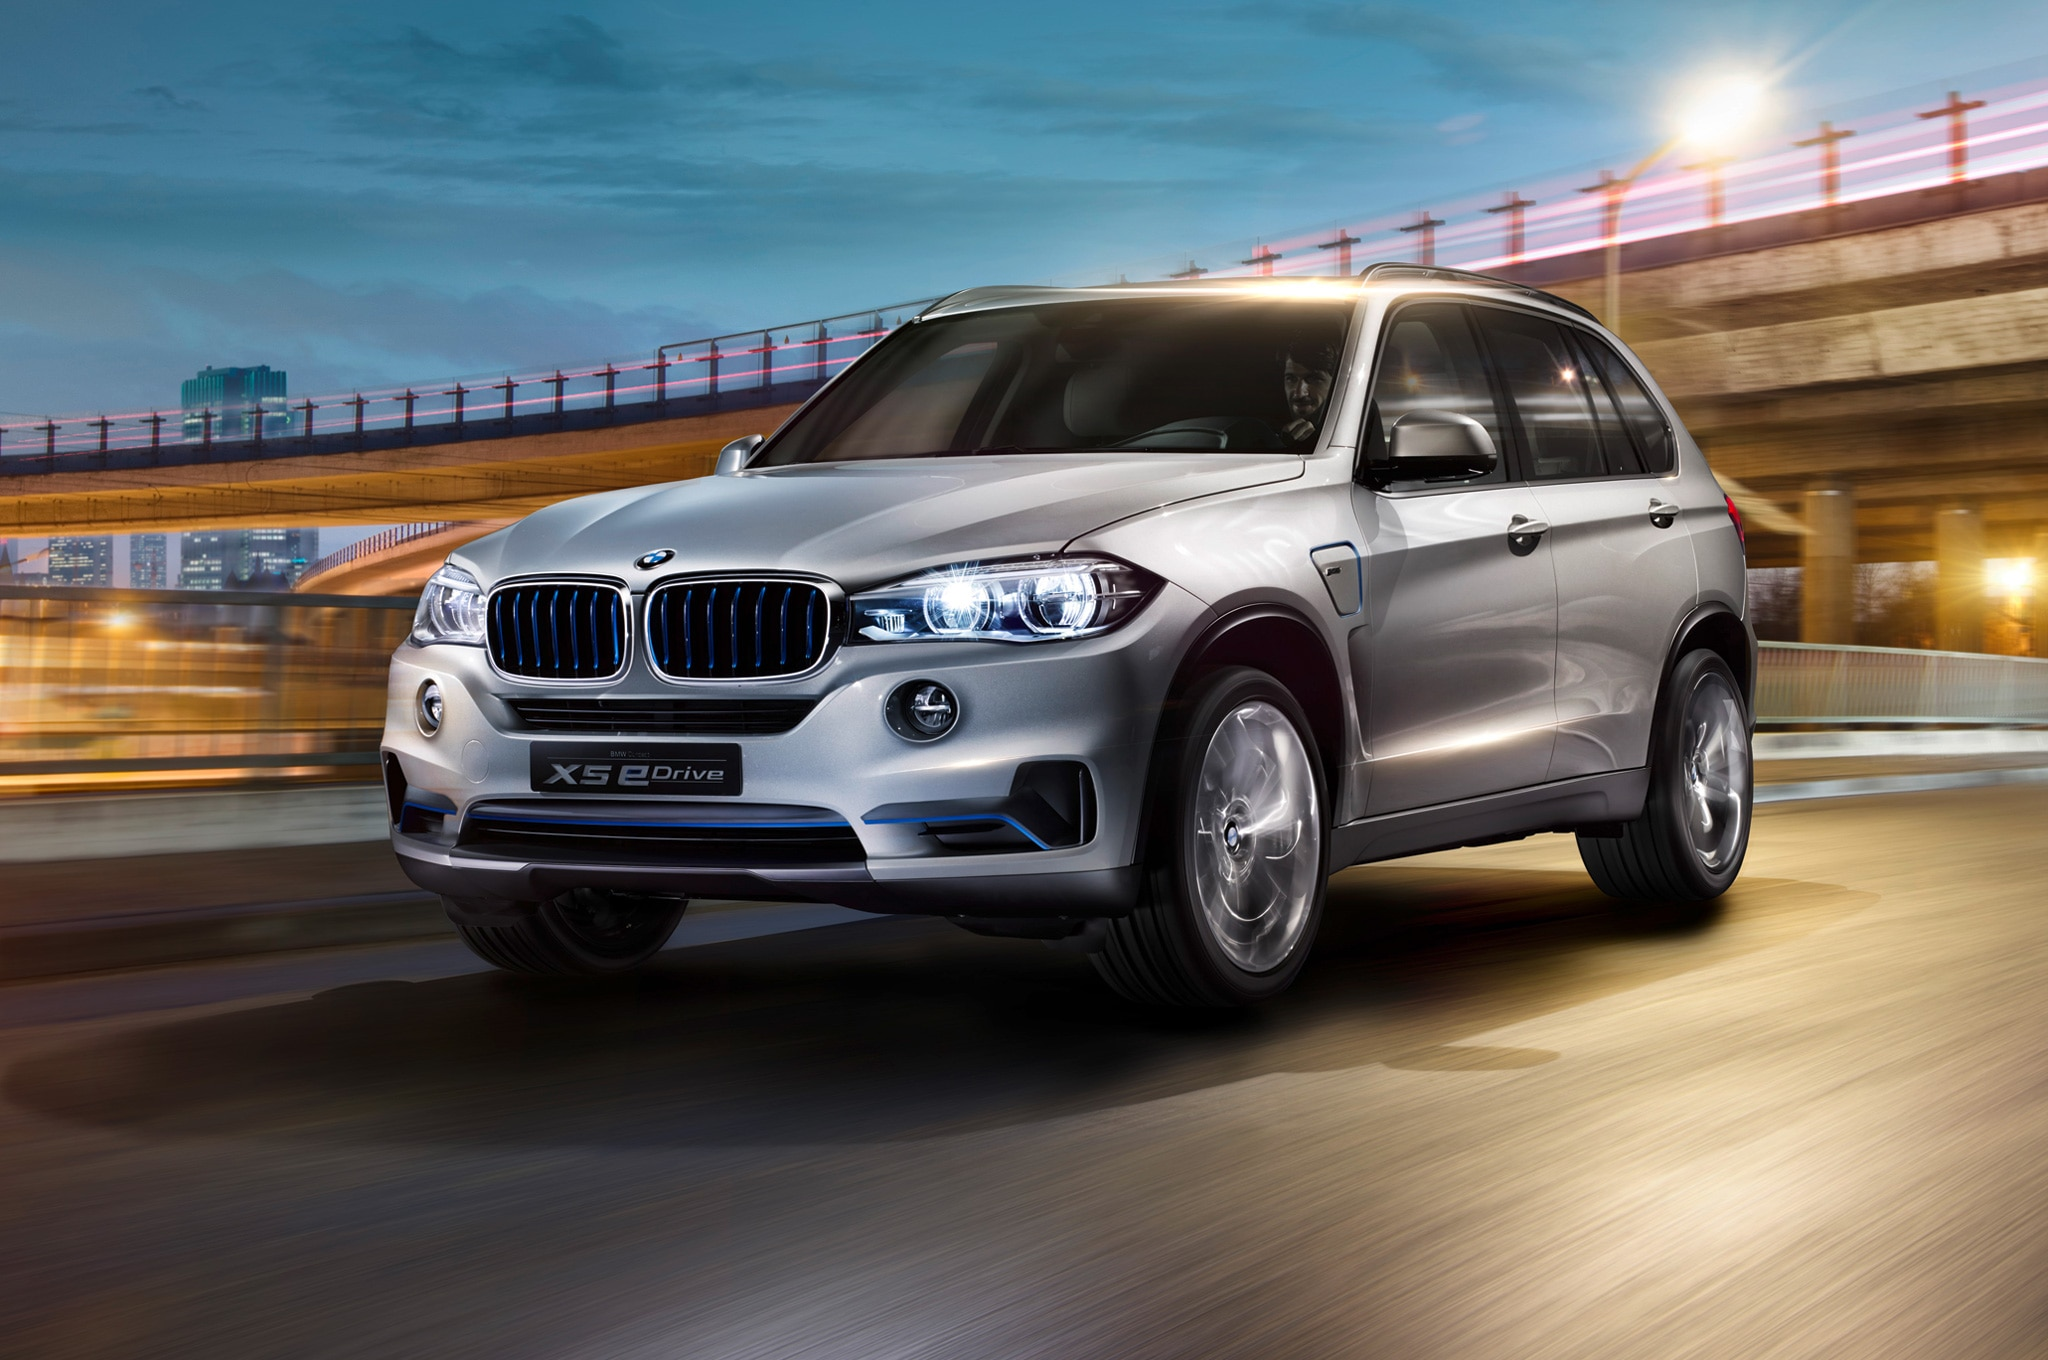 BMW X5 EDrive Concept At Night1